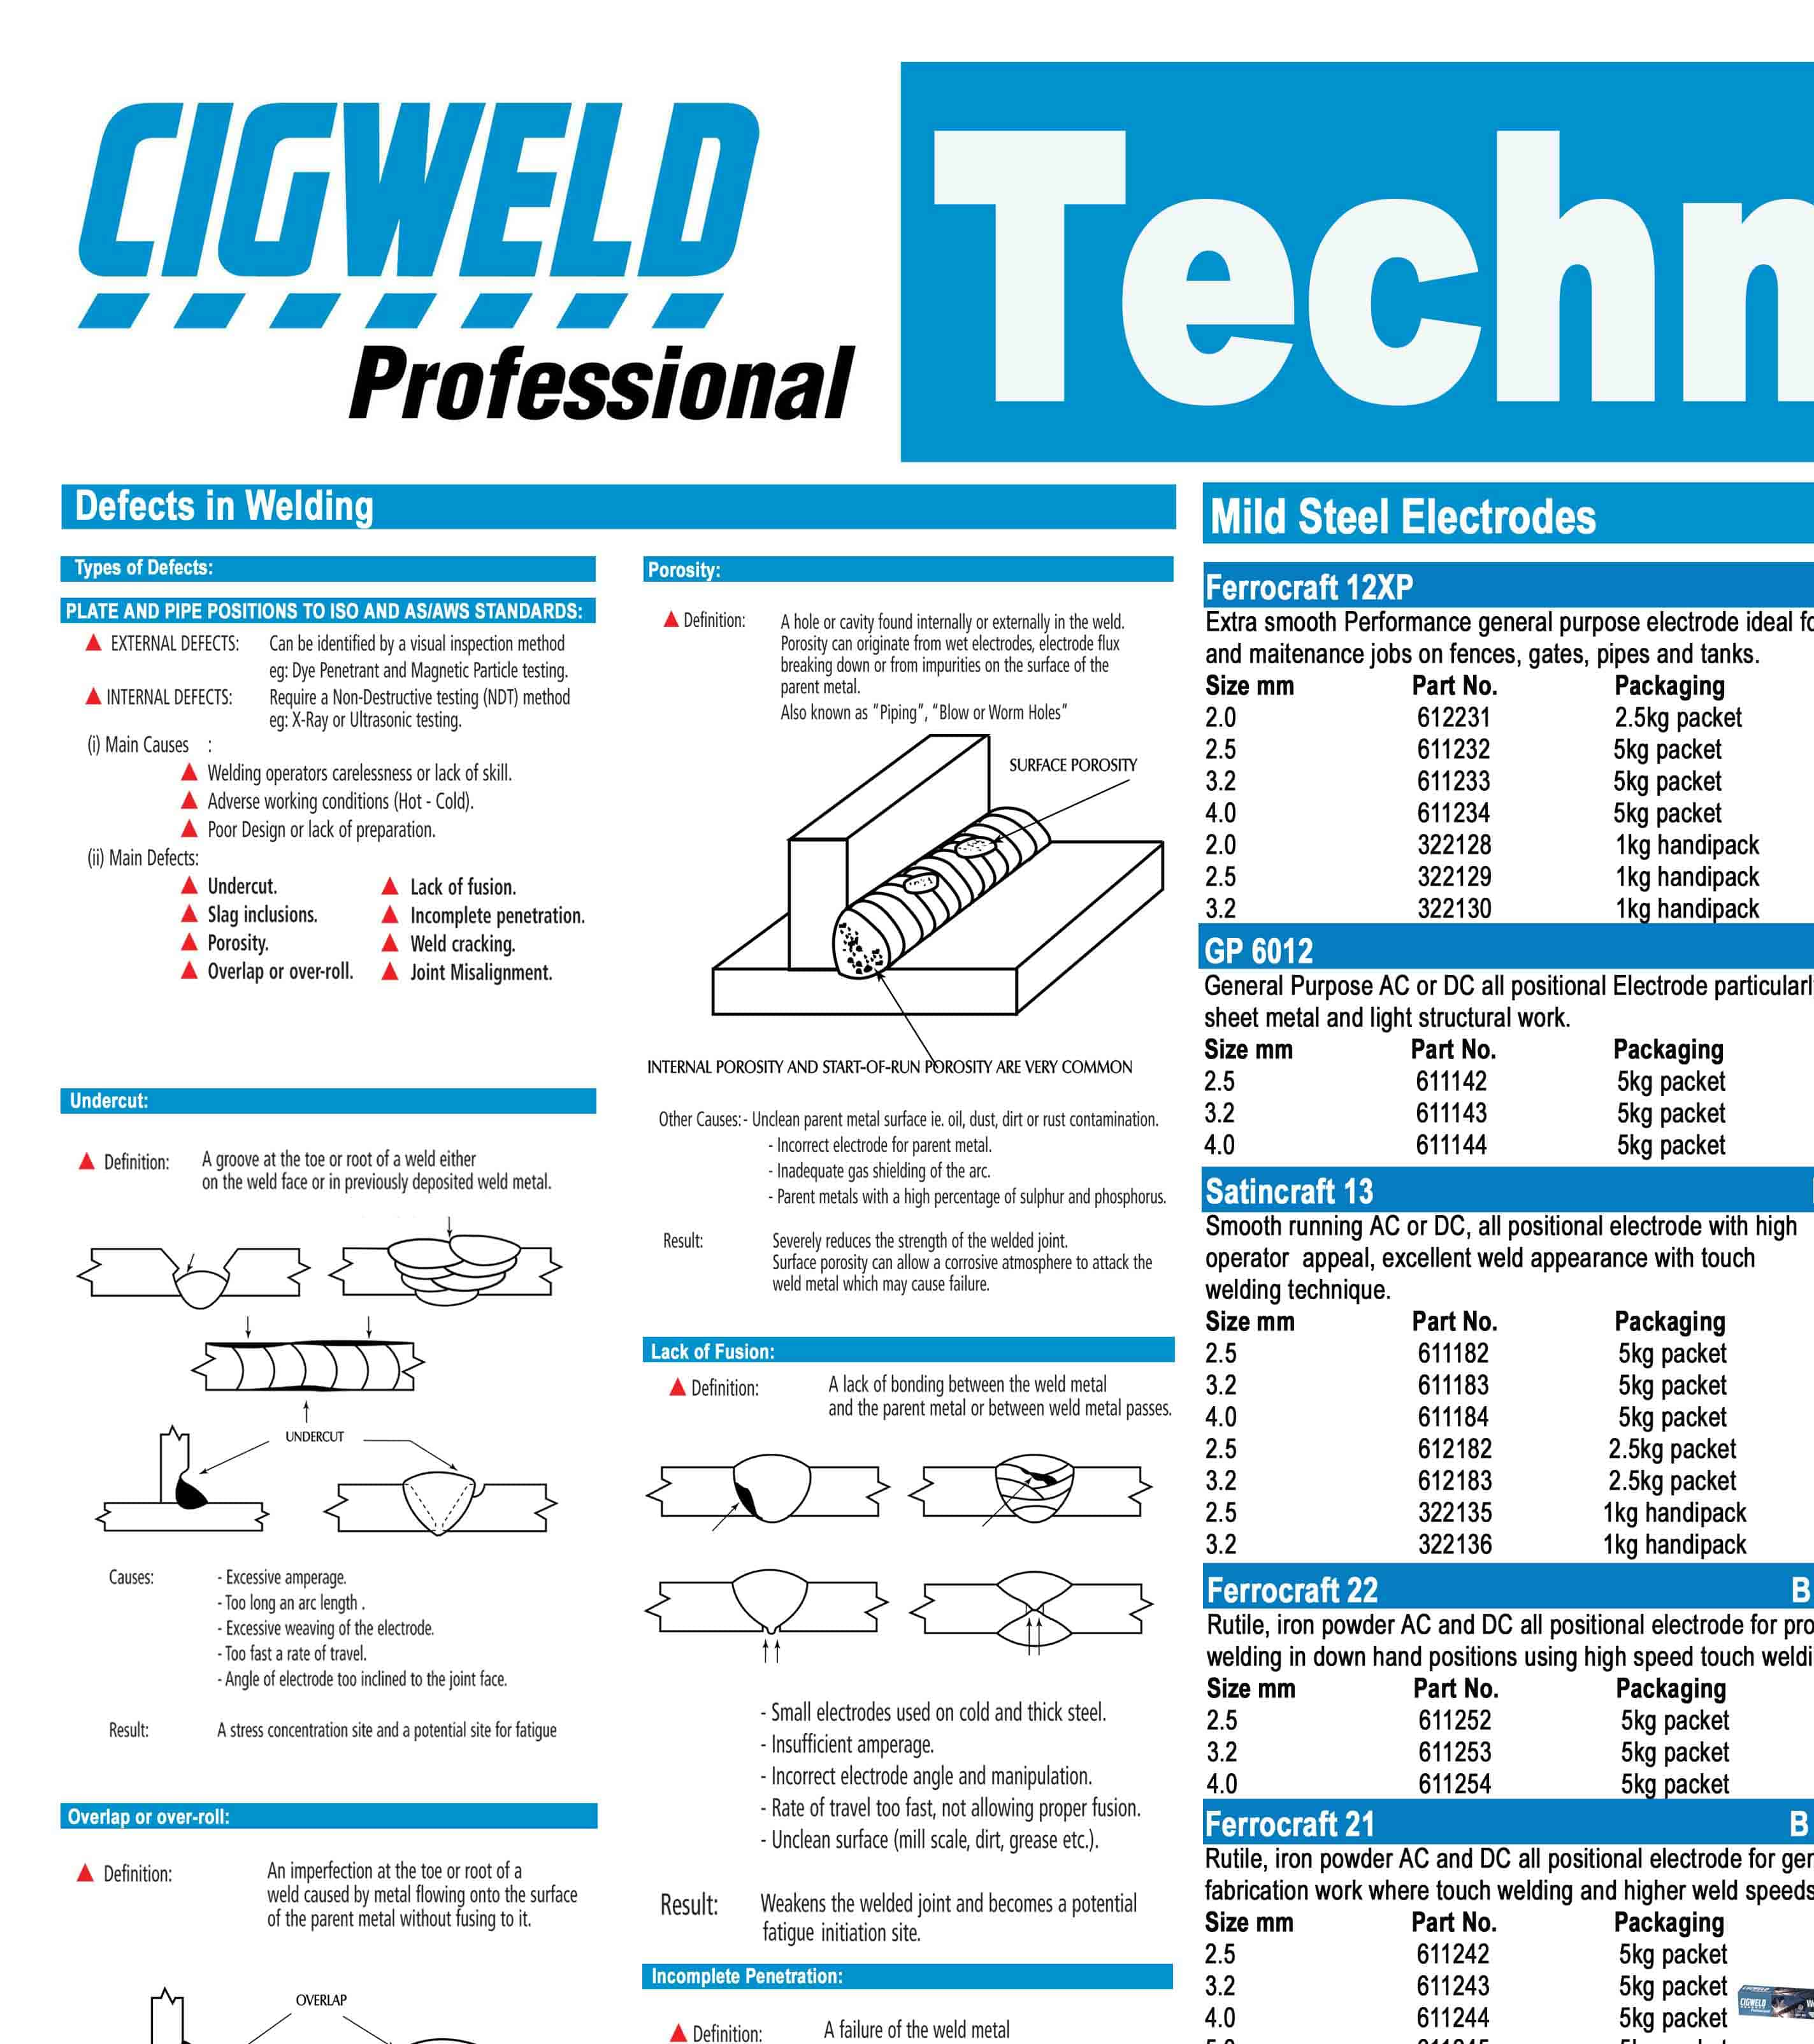 TECHNICAL AND PRODUCT INFORMATION